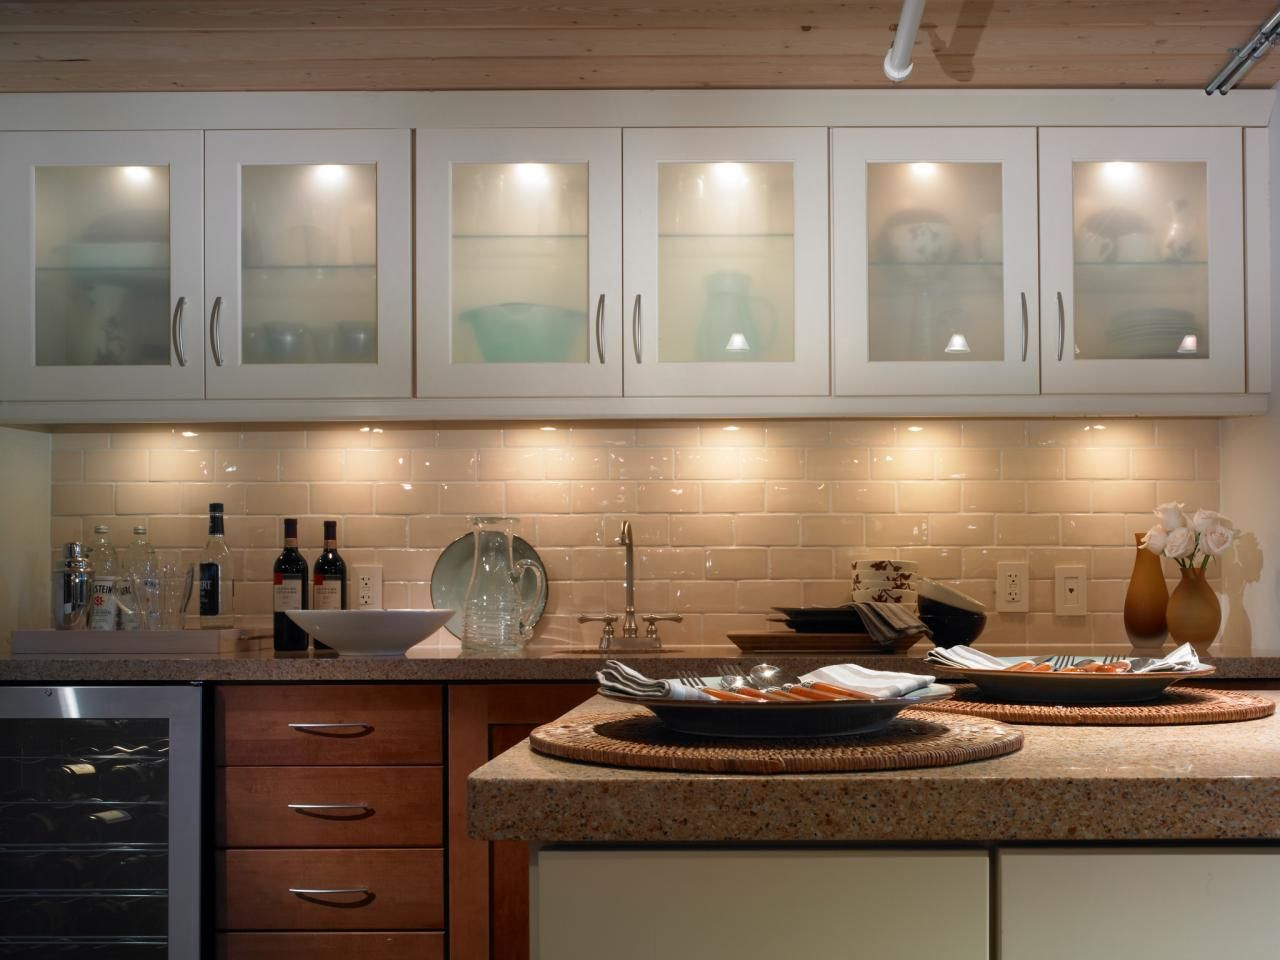 Kitchen lighting design tips kitchen lighting design for Kitchen lighting plan